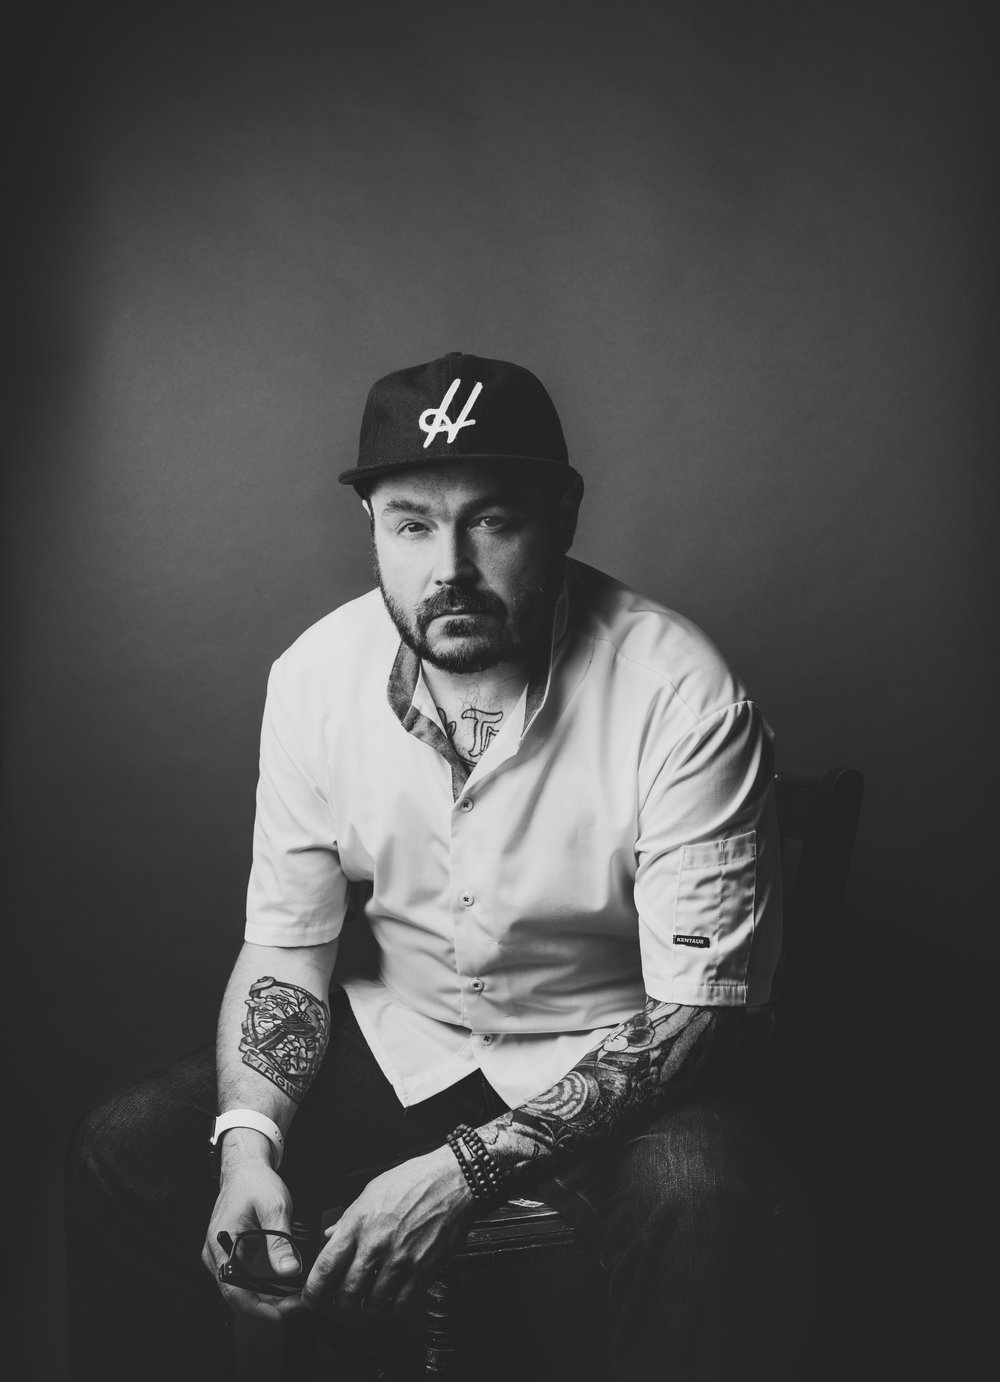 SeanBrock4.WillIamCrooks.jpg